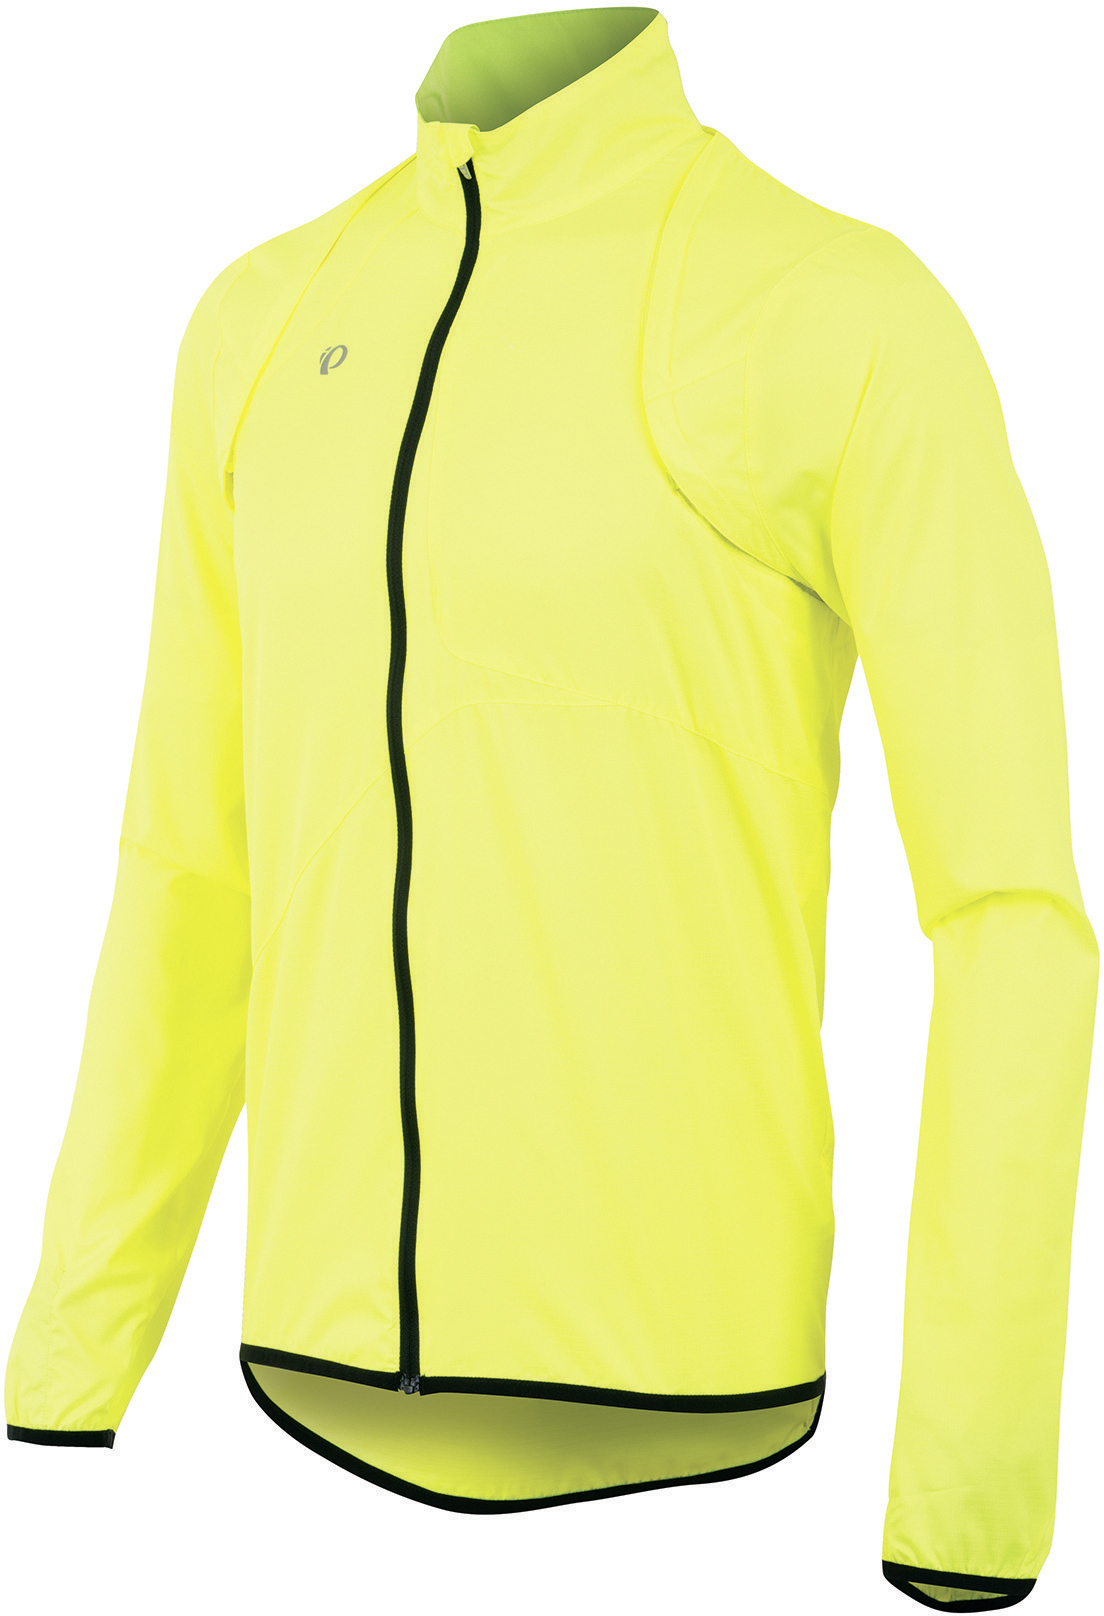 PEARL iZUMi FLY CONVERT bunda, screaming žlutá, M